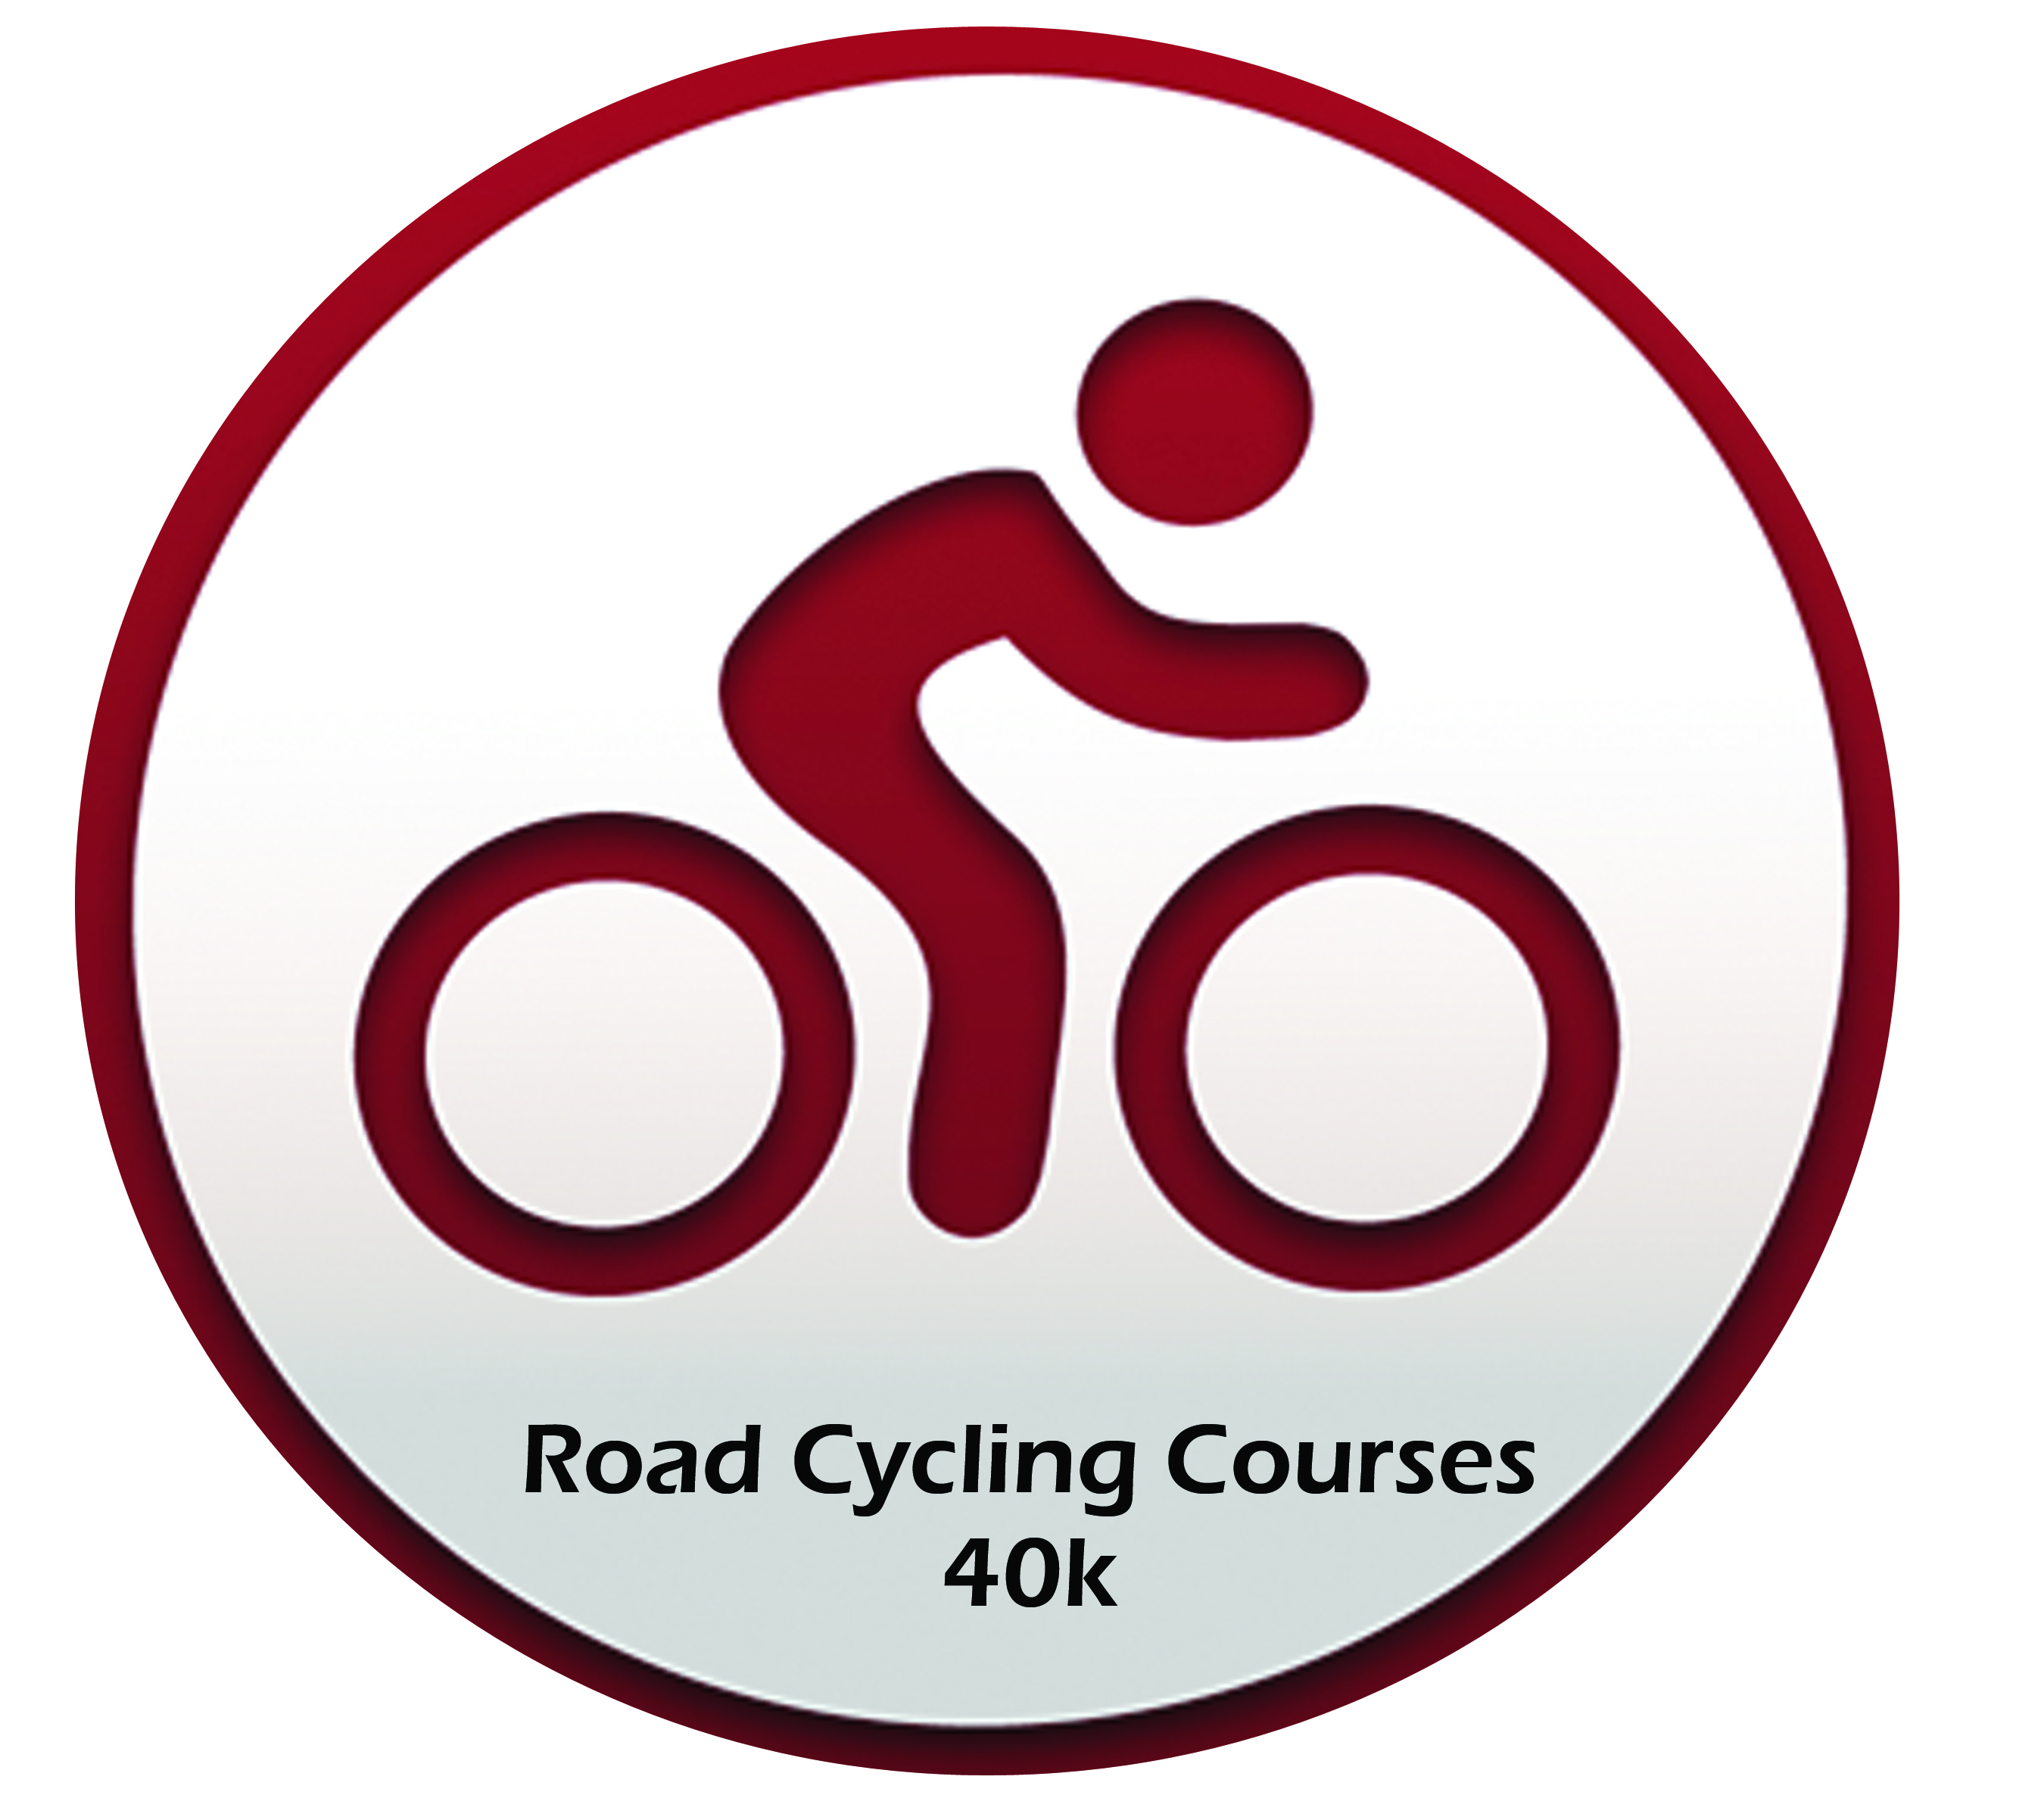 Road Cycling Course-40k.jpg